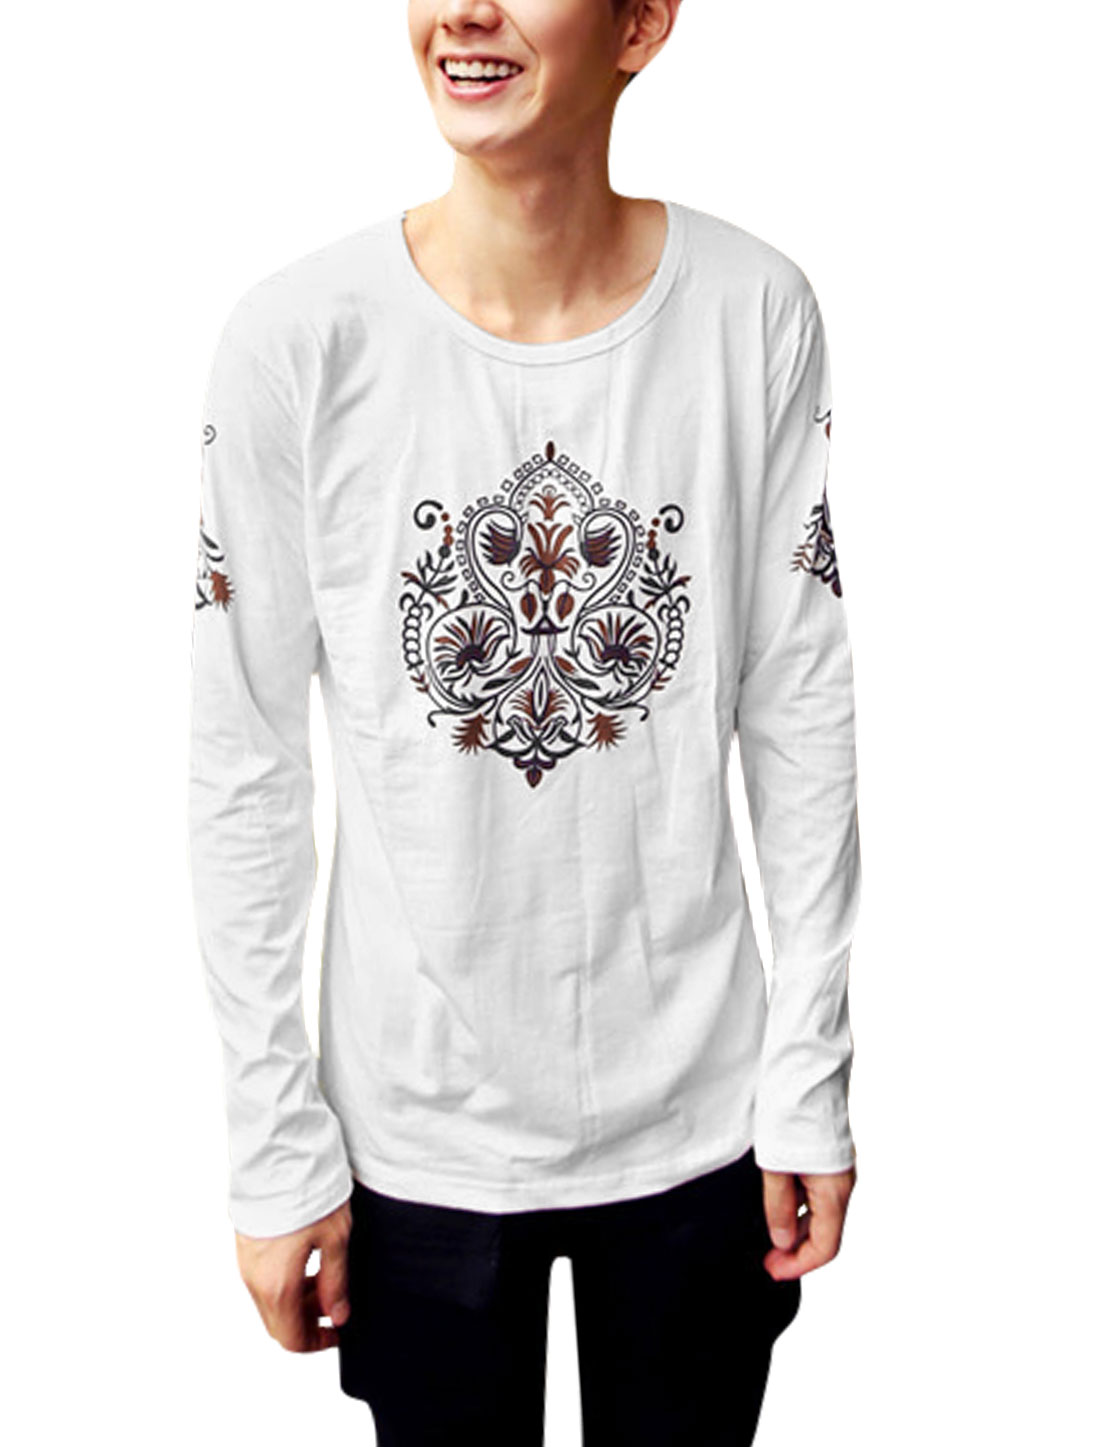 Men White Pullover Jacquard Pattern Long Sleeves Leisure T-Shirt M